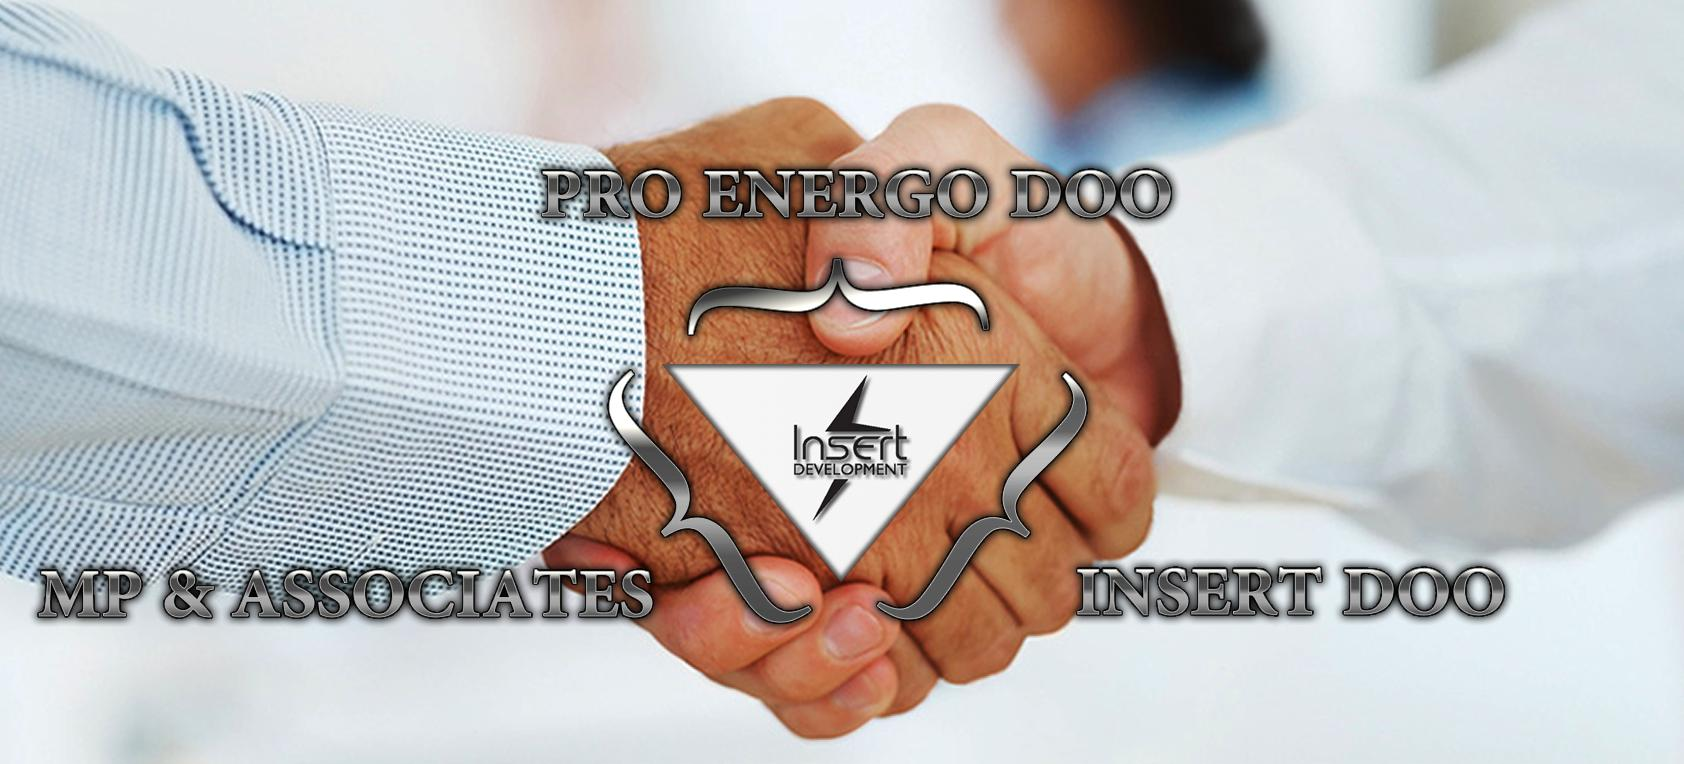 Insert Development operated by three partners: INSERT DOO, MP and Associates DOO, and PRO ENERGO DOO.